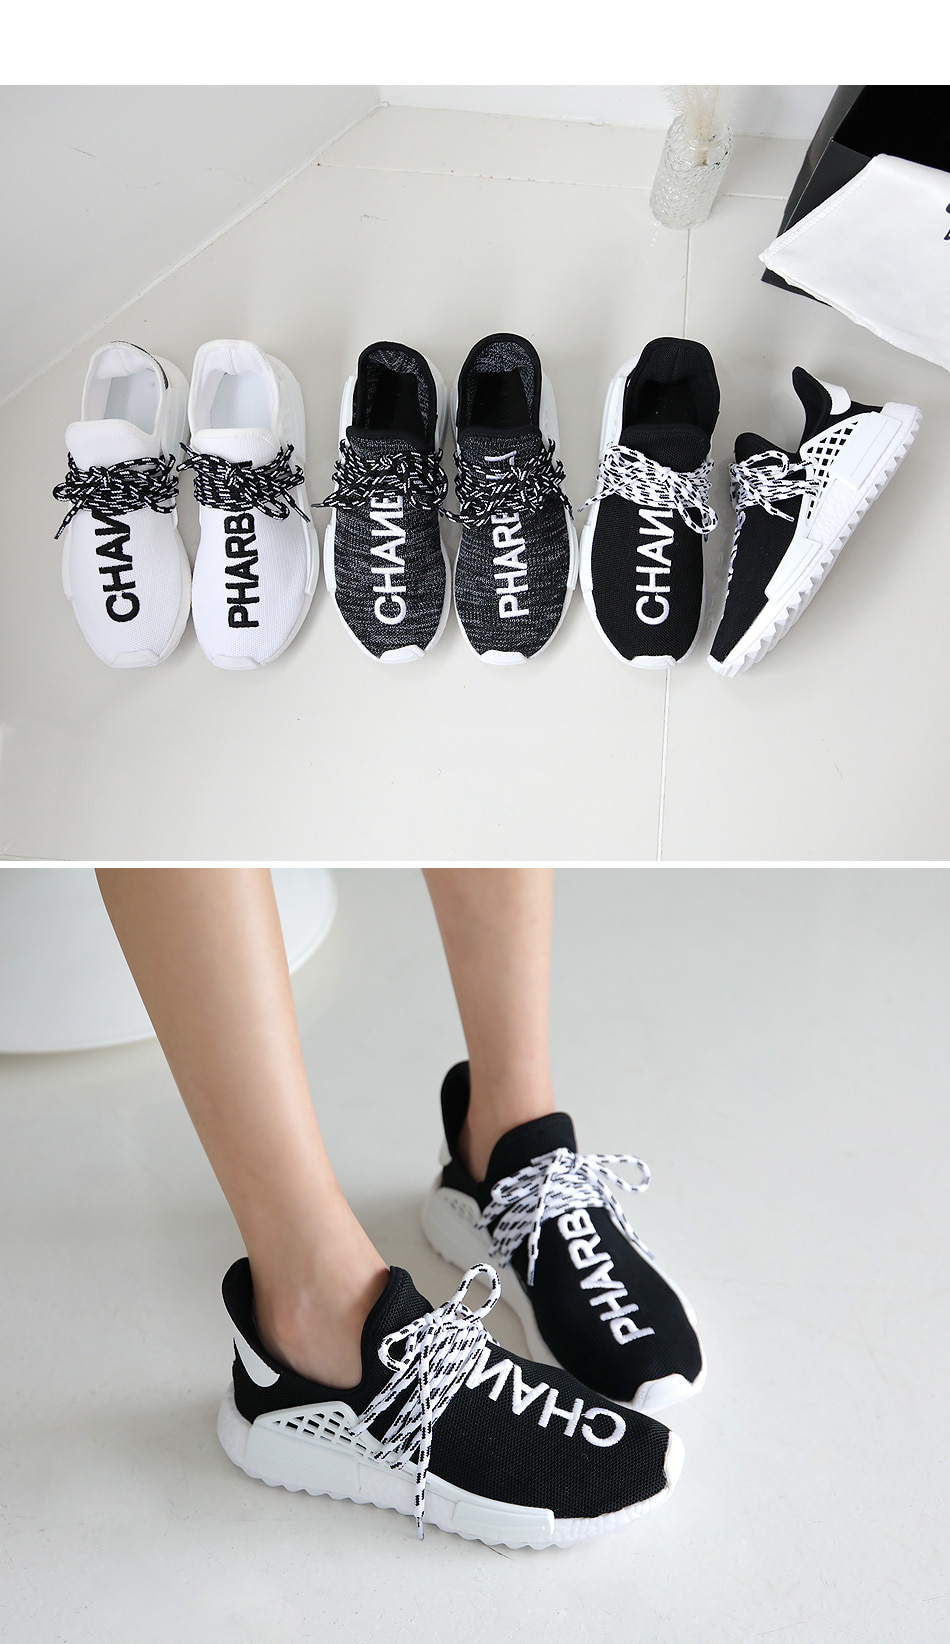 Charlotte Knit Sneakers 3cm